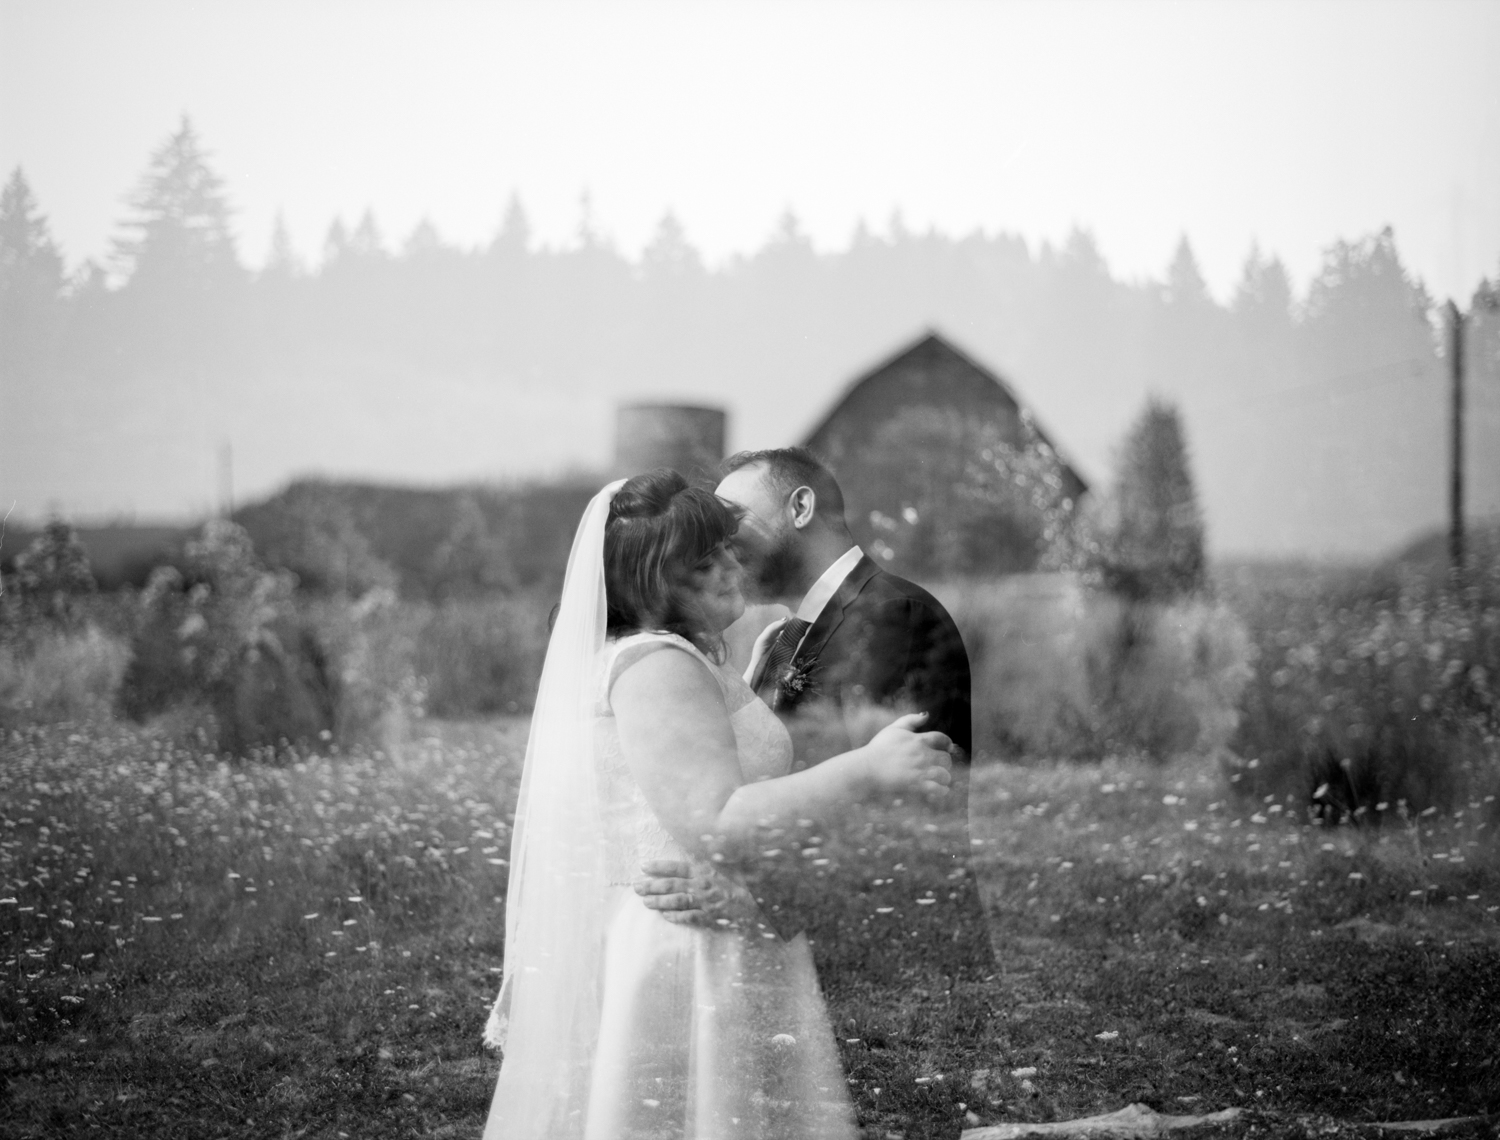 richmondvaweddingphotography-173.jpg